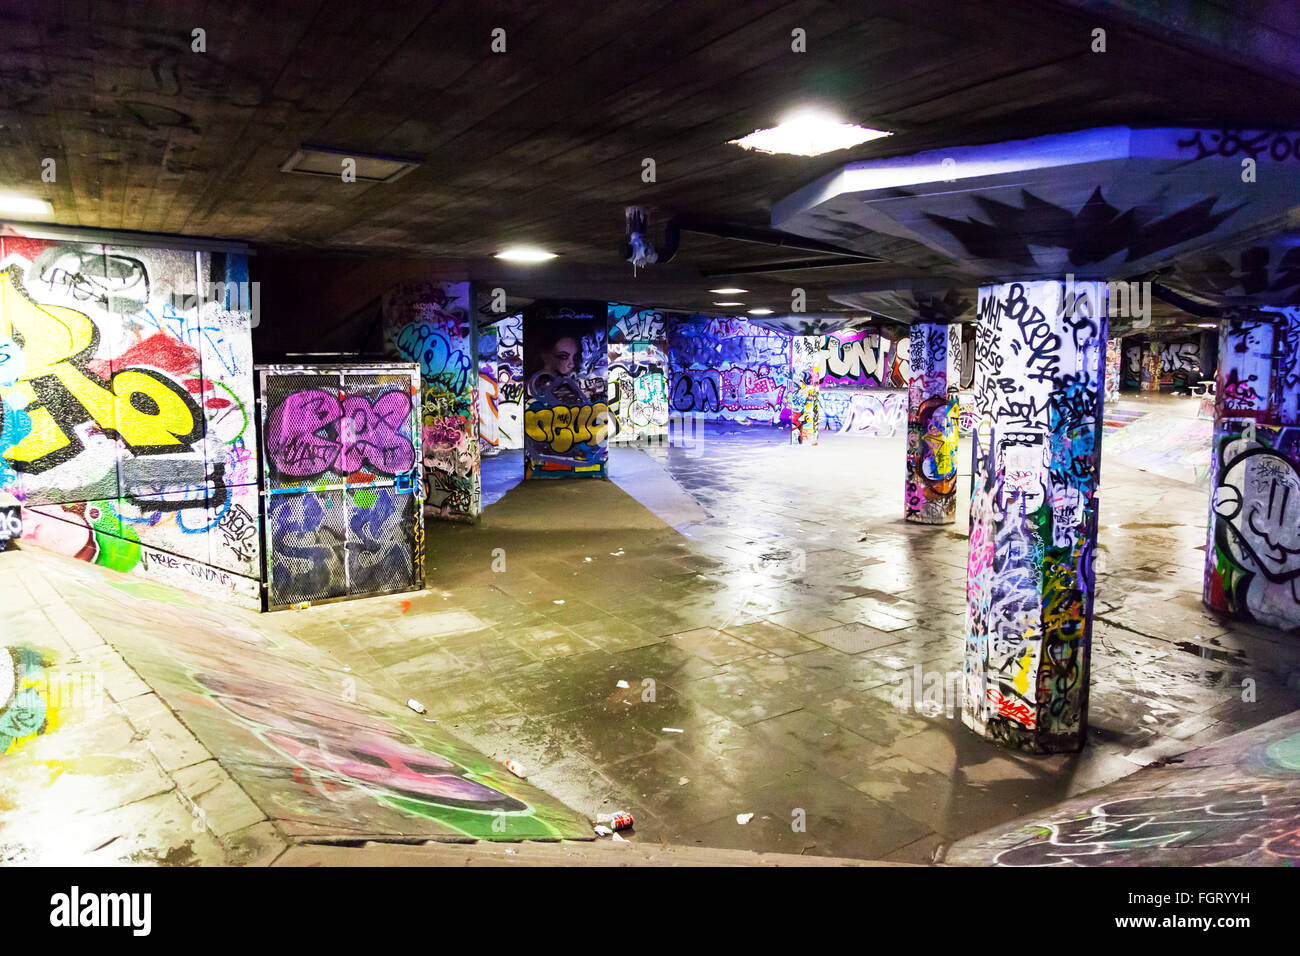 Graffiti London walls covered with spray paint art artistic design designs skate park pillars ramps - Stock Image